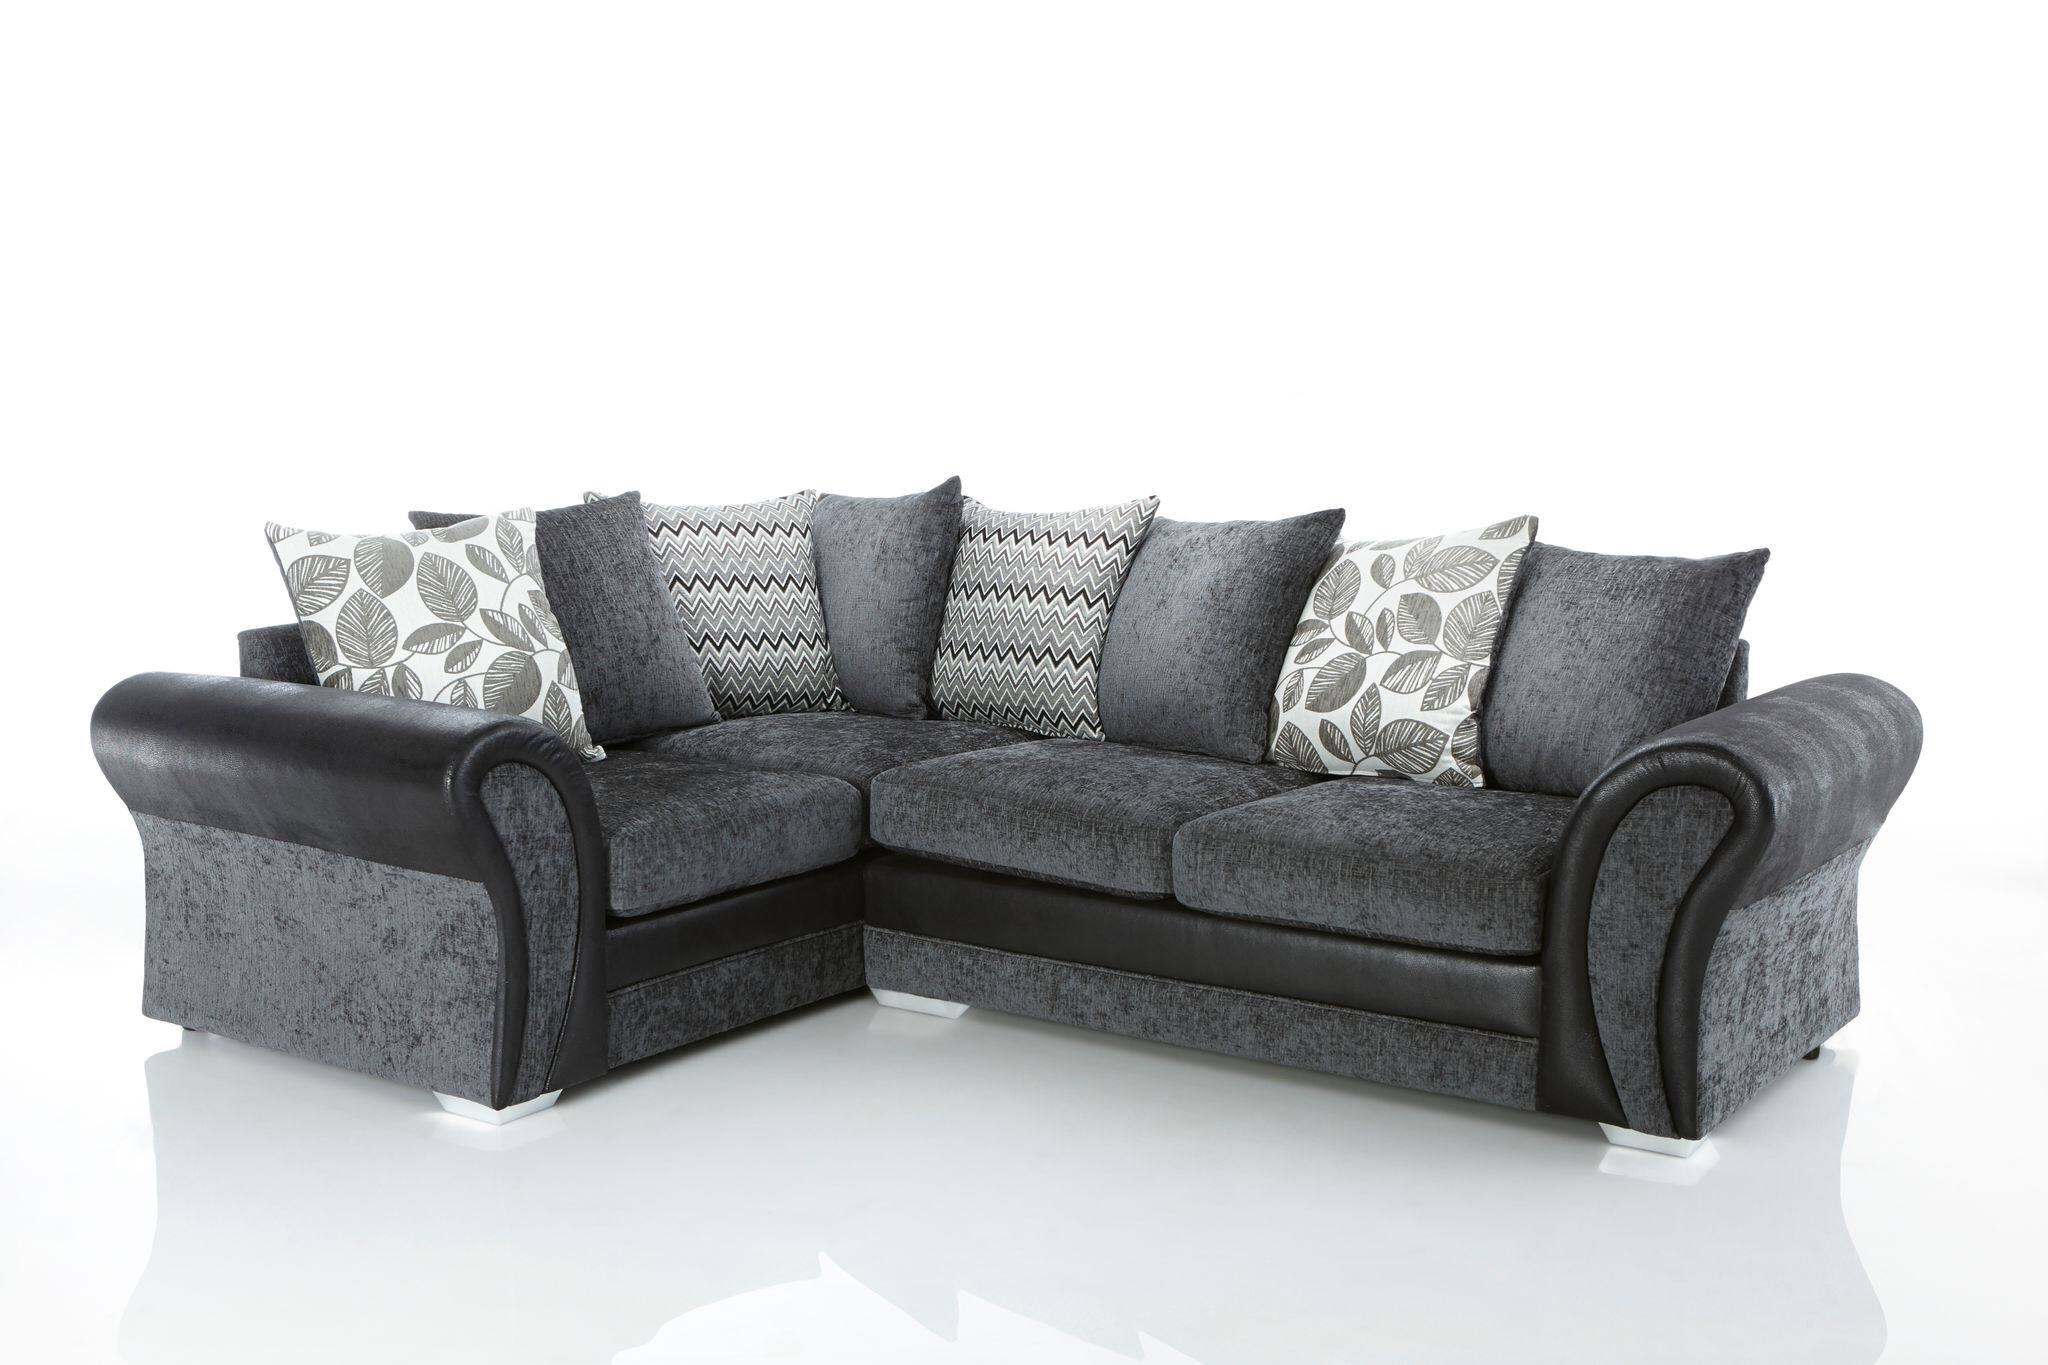 Sofaman Pertaining To 3 Seater Sofa And Cuddle Chairs (Image 14 of 15)